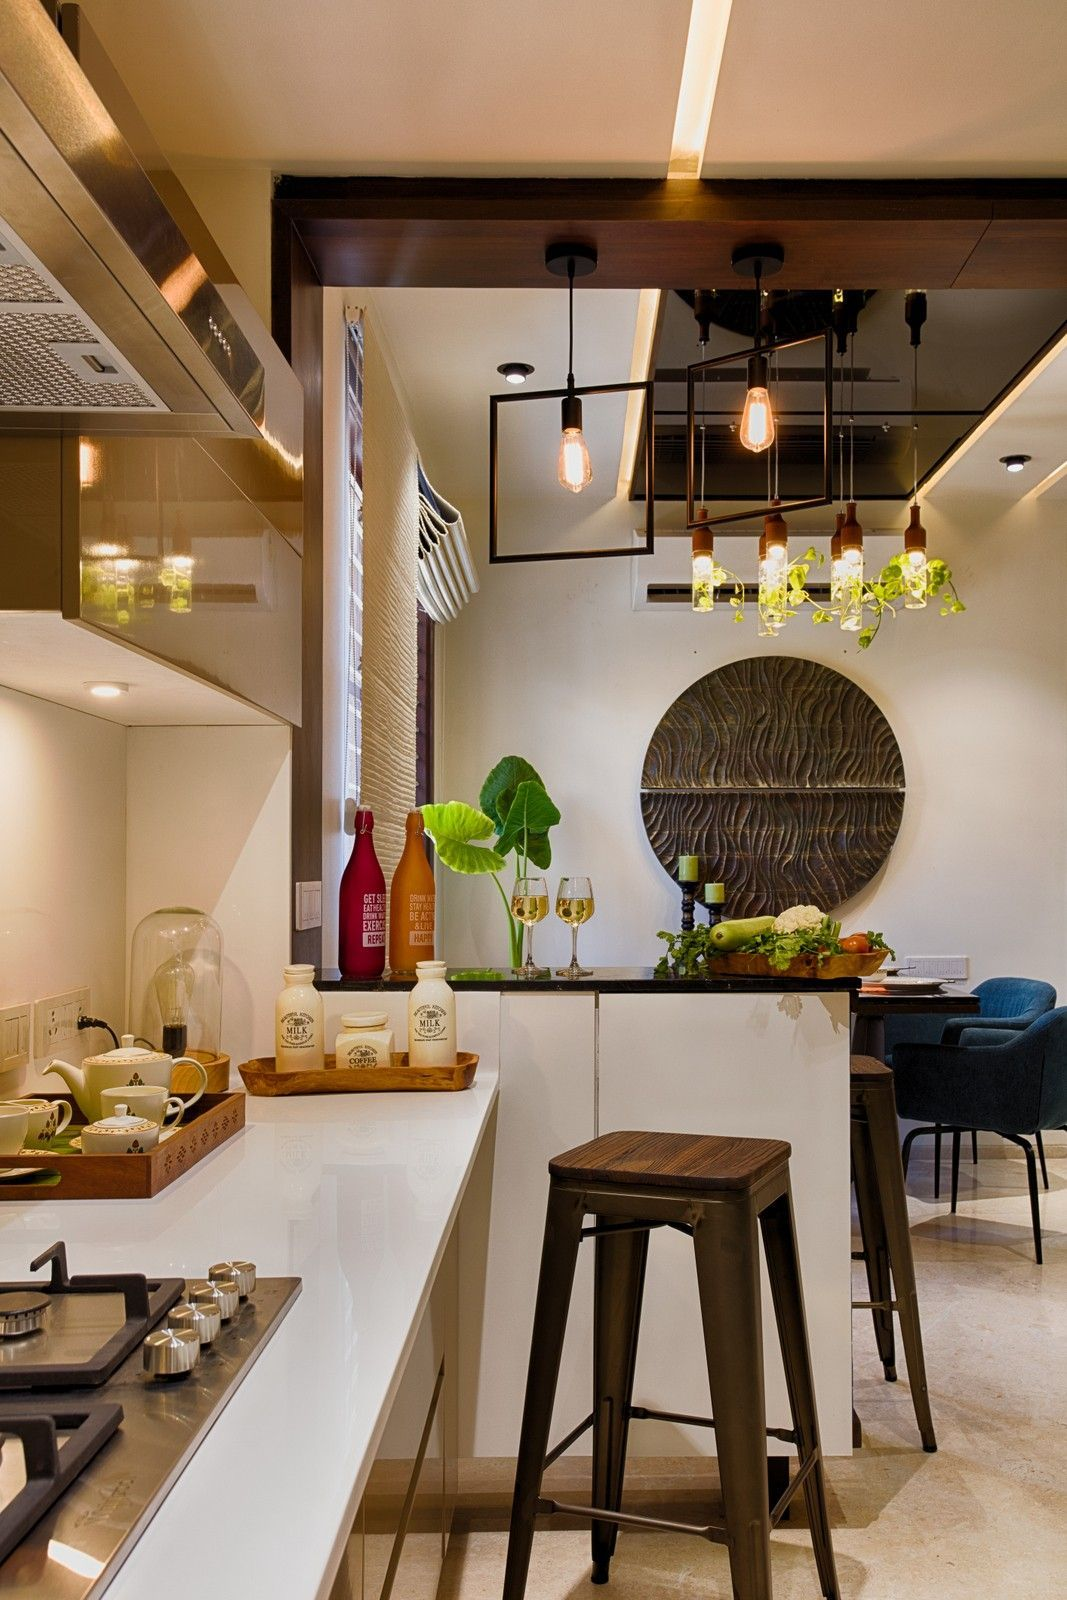 15 Indian Kitchen Design Images From Real Homes